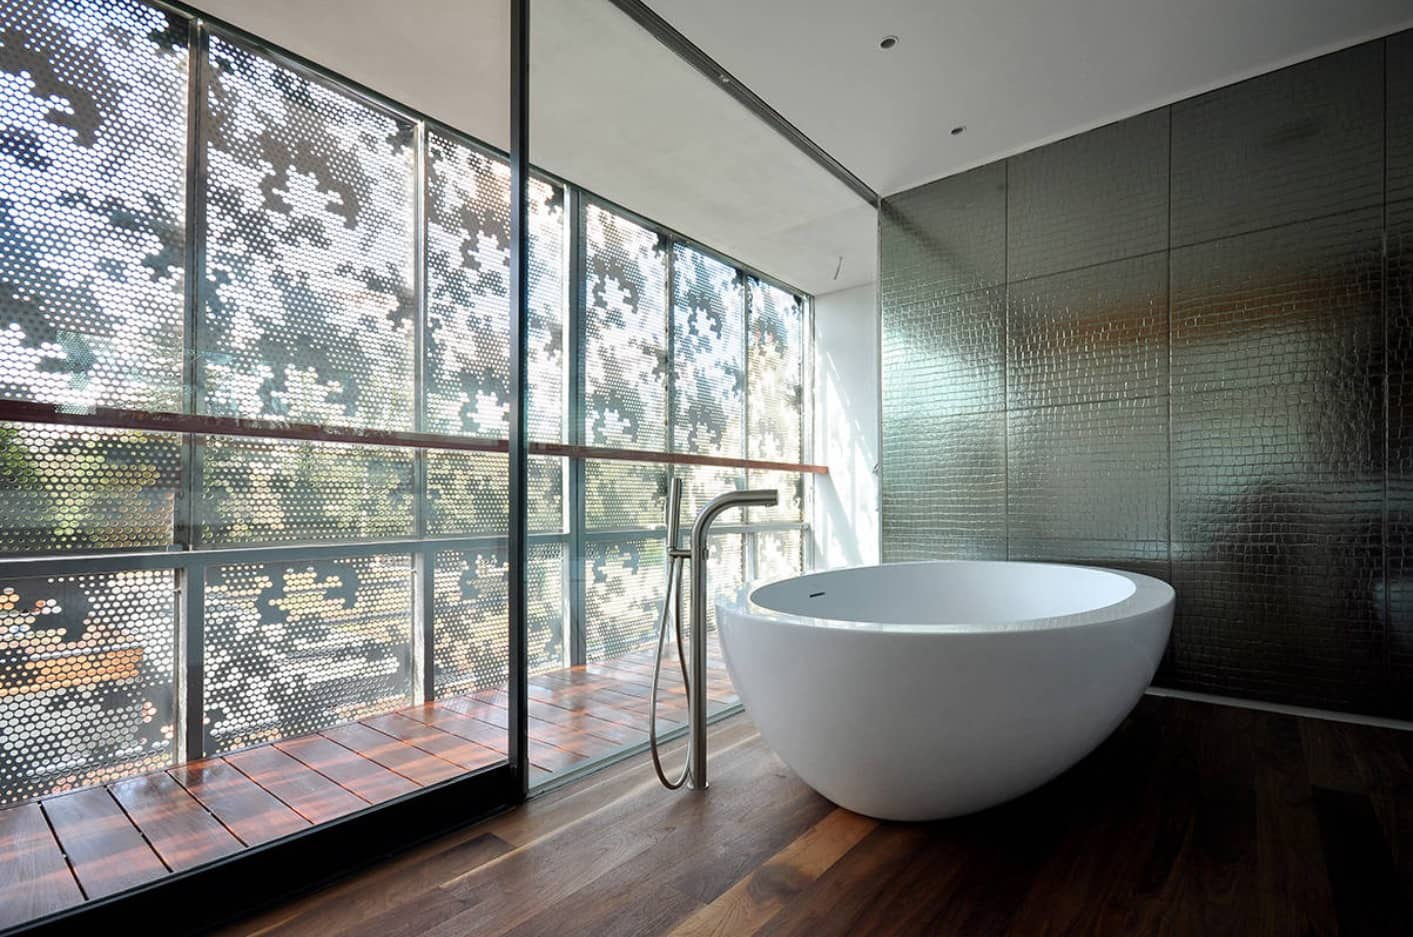 Japanese style touch in the interior of the bathroom